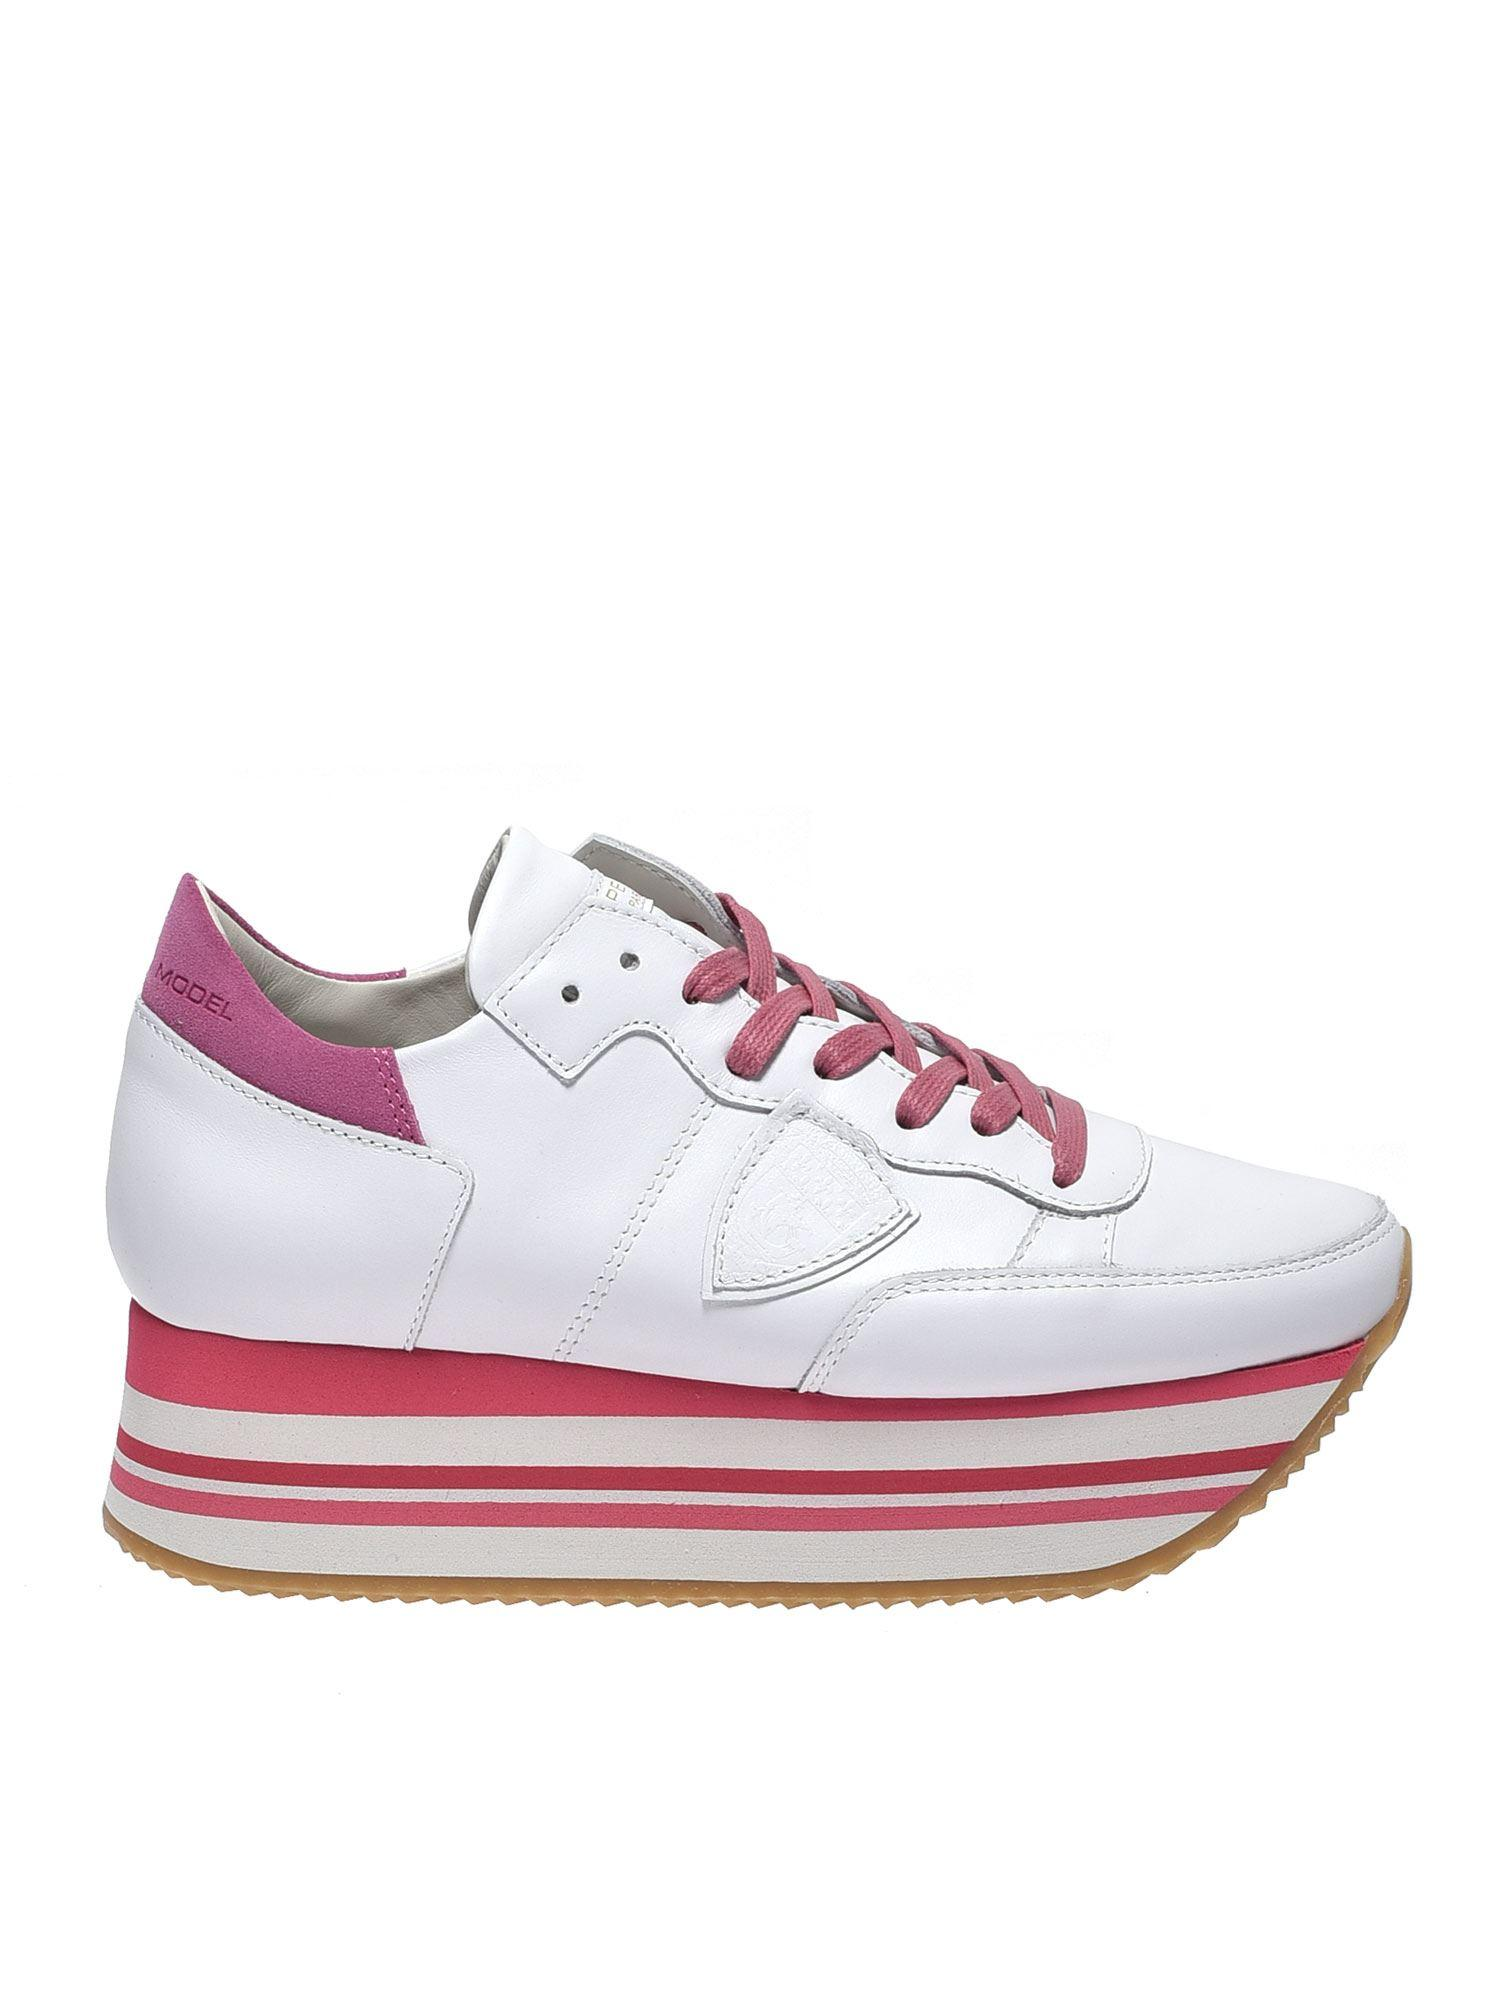 3826105cdabb Lyst - Philippe Model White And Fuchsia Eild Sneakers in White